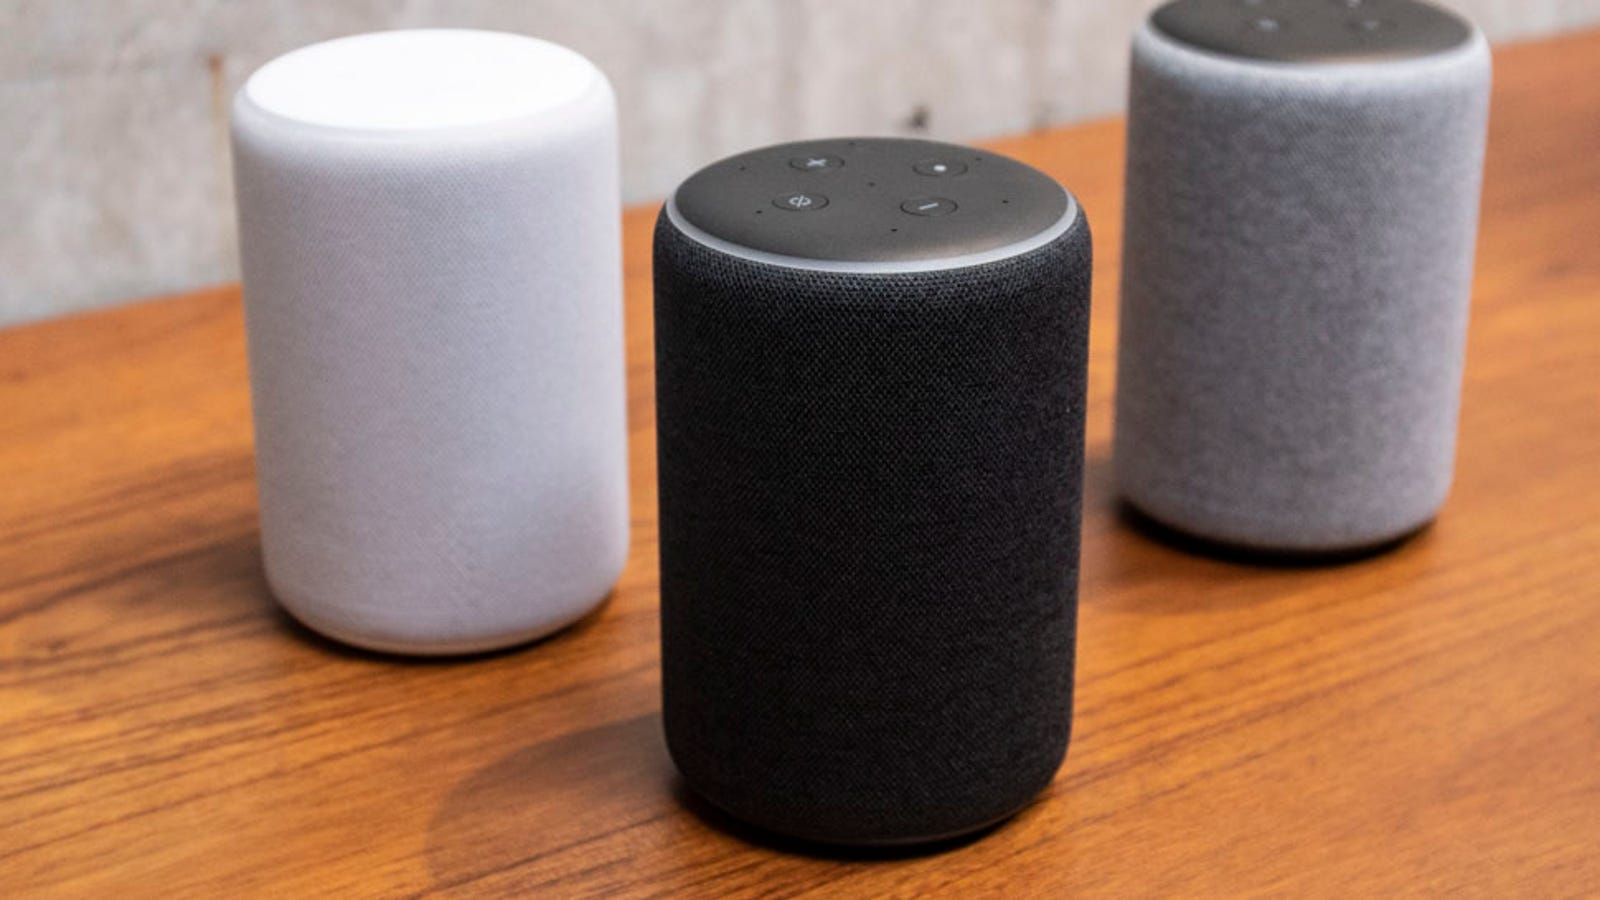 Amazon Launches New Spotify Competitor With Ad-Supported Music Streaming for Echo Devices